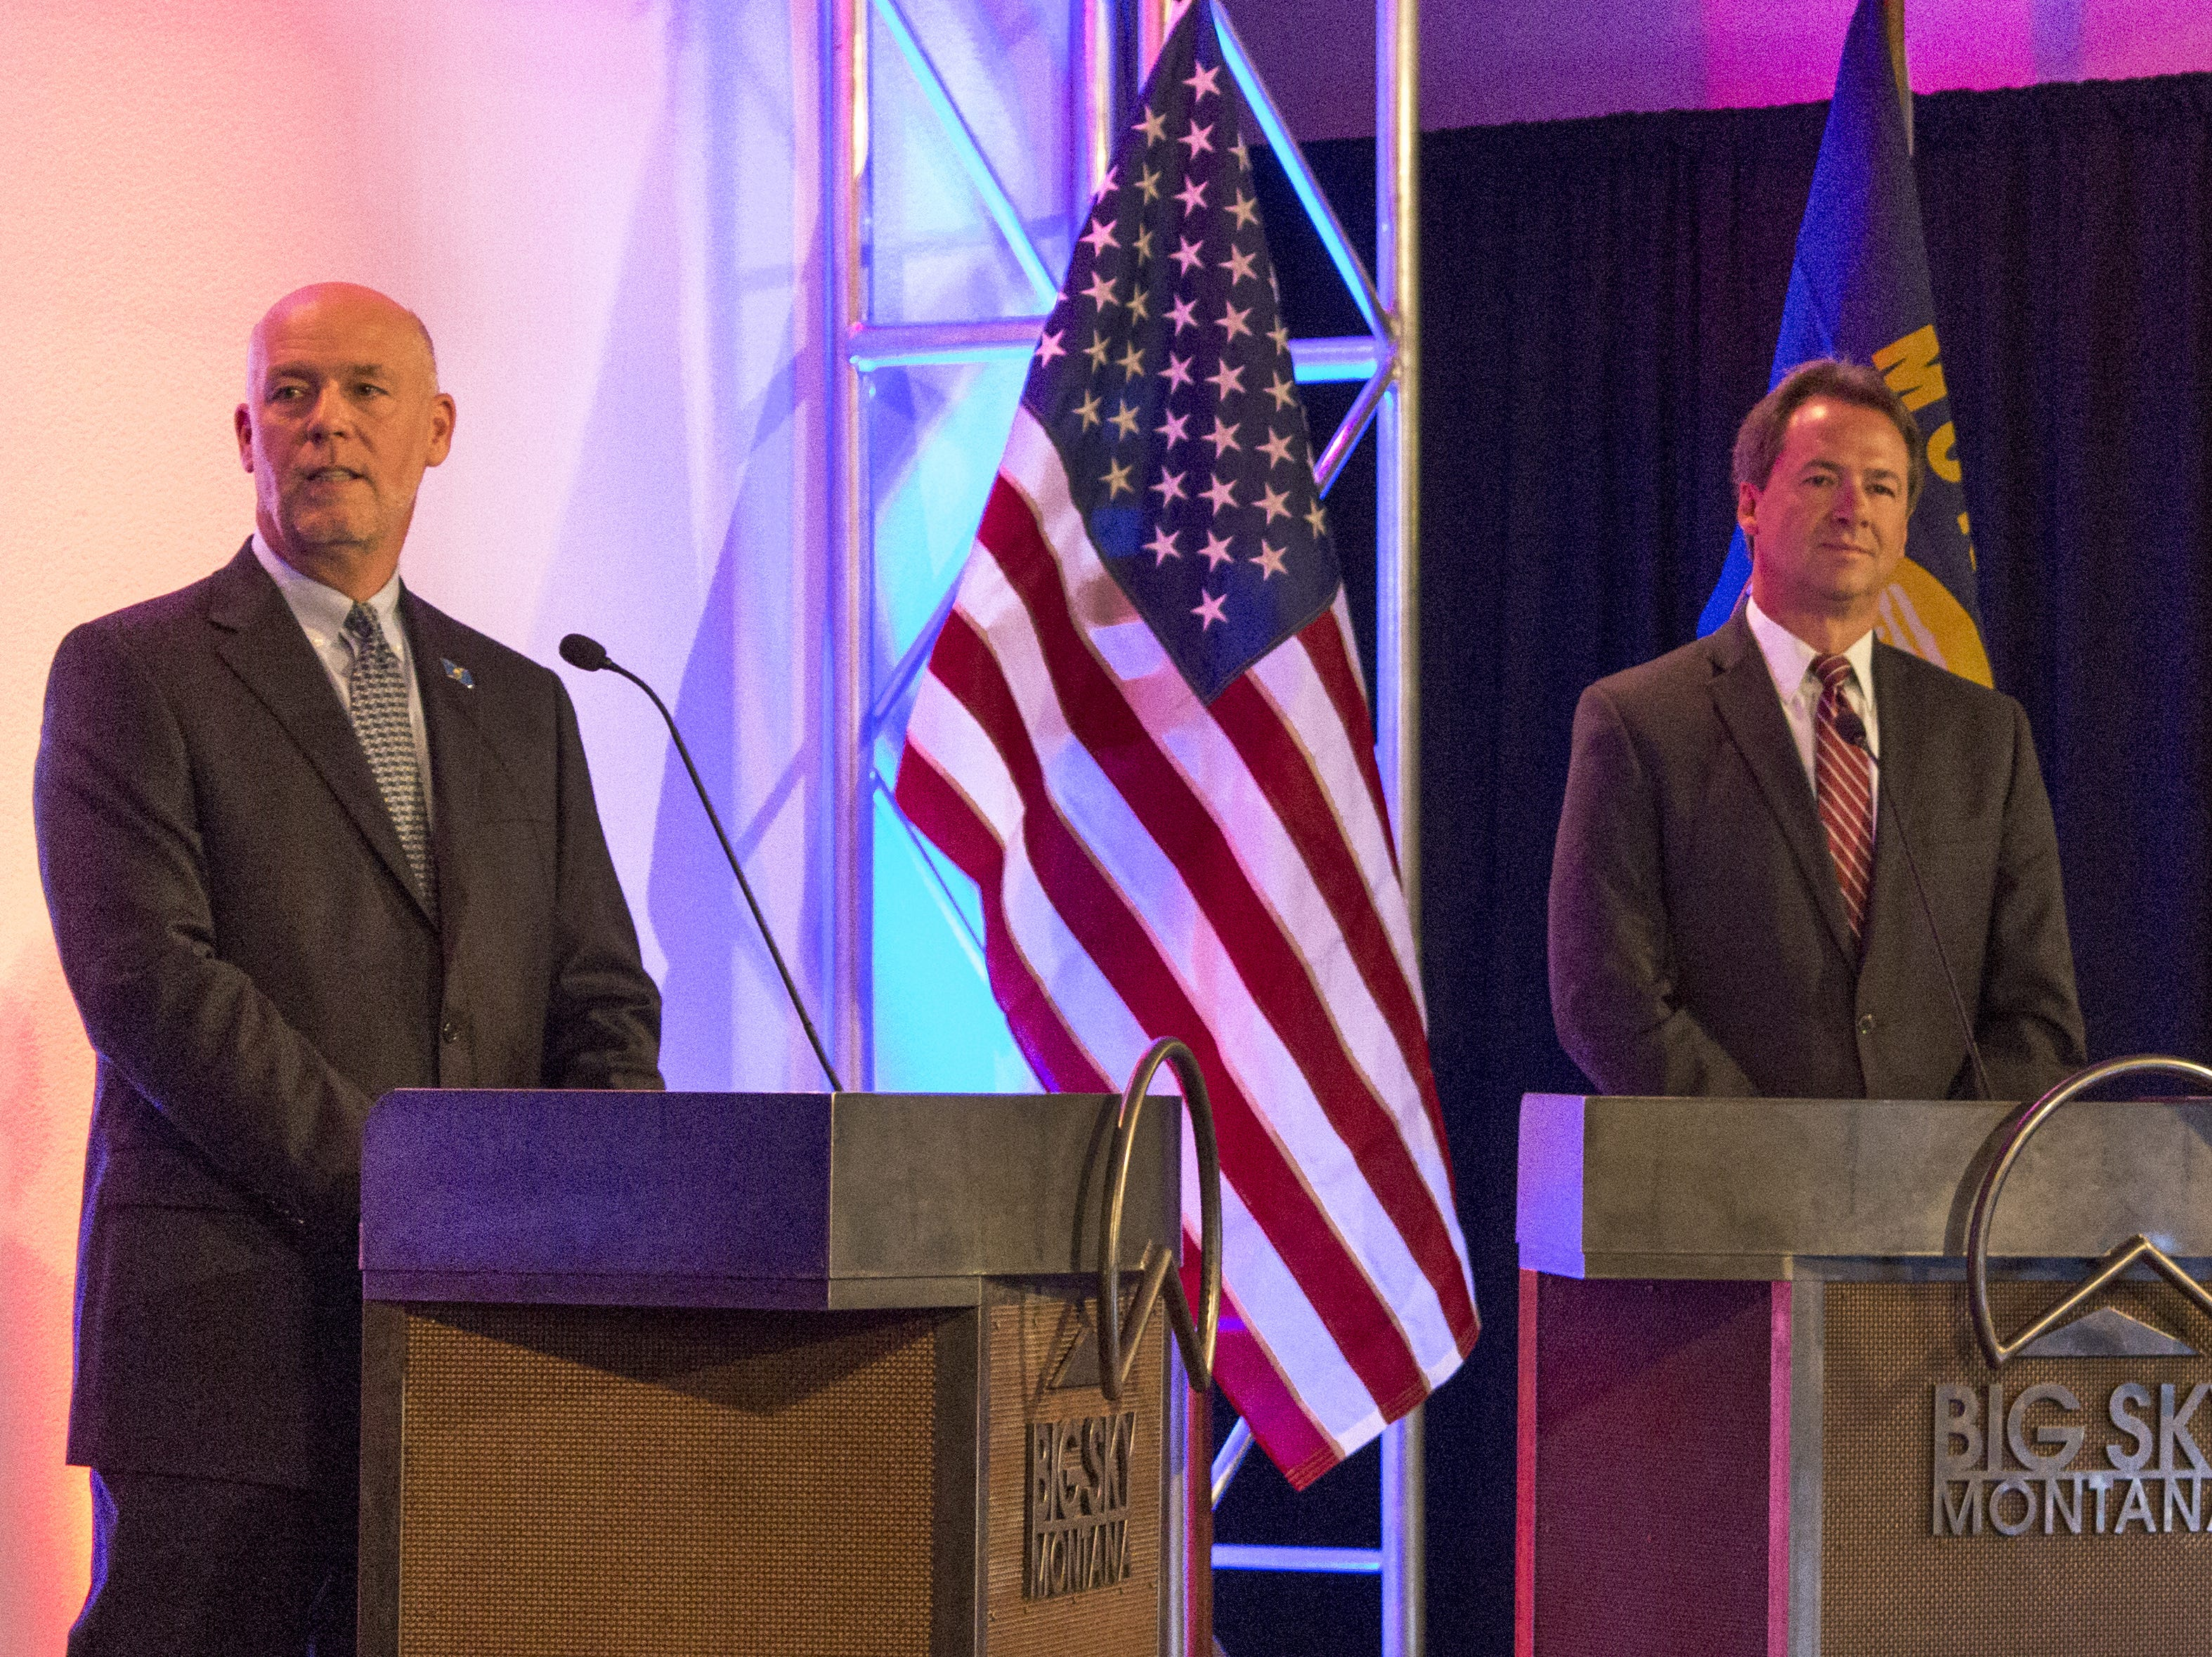 AP Photo/Bobby Caina Calvan, File  Montana Gov. Steve Bullock, right, and his Republican challenger, Greg Gianforte, take part in their first debate in Big Sky on Sunday. FILE - In this June 26, 2016, file photo, Montana Gov. Steve Bullock, right, and his Republican challenger, Greg Gianforte take part in their first debate of the campaign season in Big Sky, Mont. In his bid for Montana governor, Bozeman entrepreneur Greg Gianforte has given his campaign more than $500,000 and more of his personal wealth could stream into his campaign as the Republican ramps up his effort to unseat Gov. Steve Bullock and pours more money into expensive television spots and other advertising. (AP Photo/Bobby Caina Calvan, File)